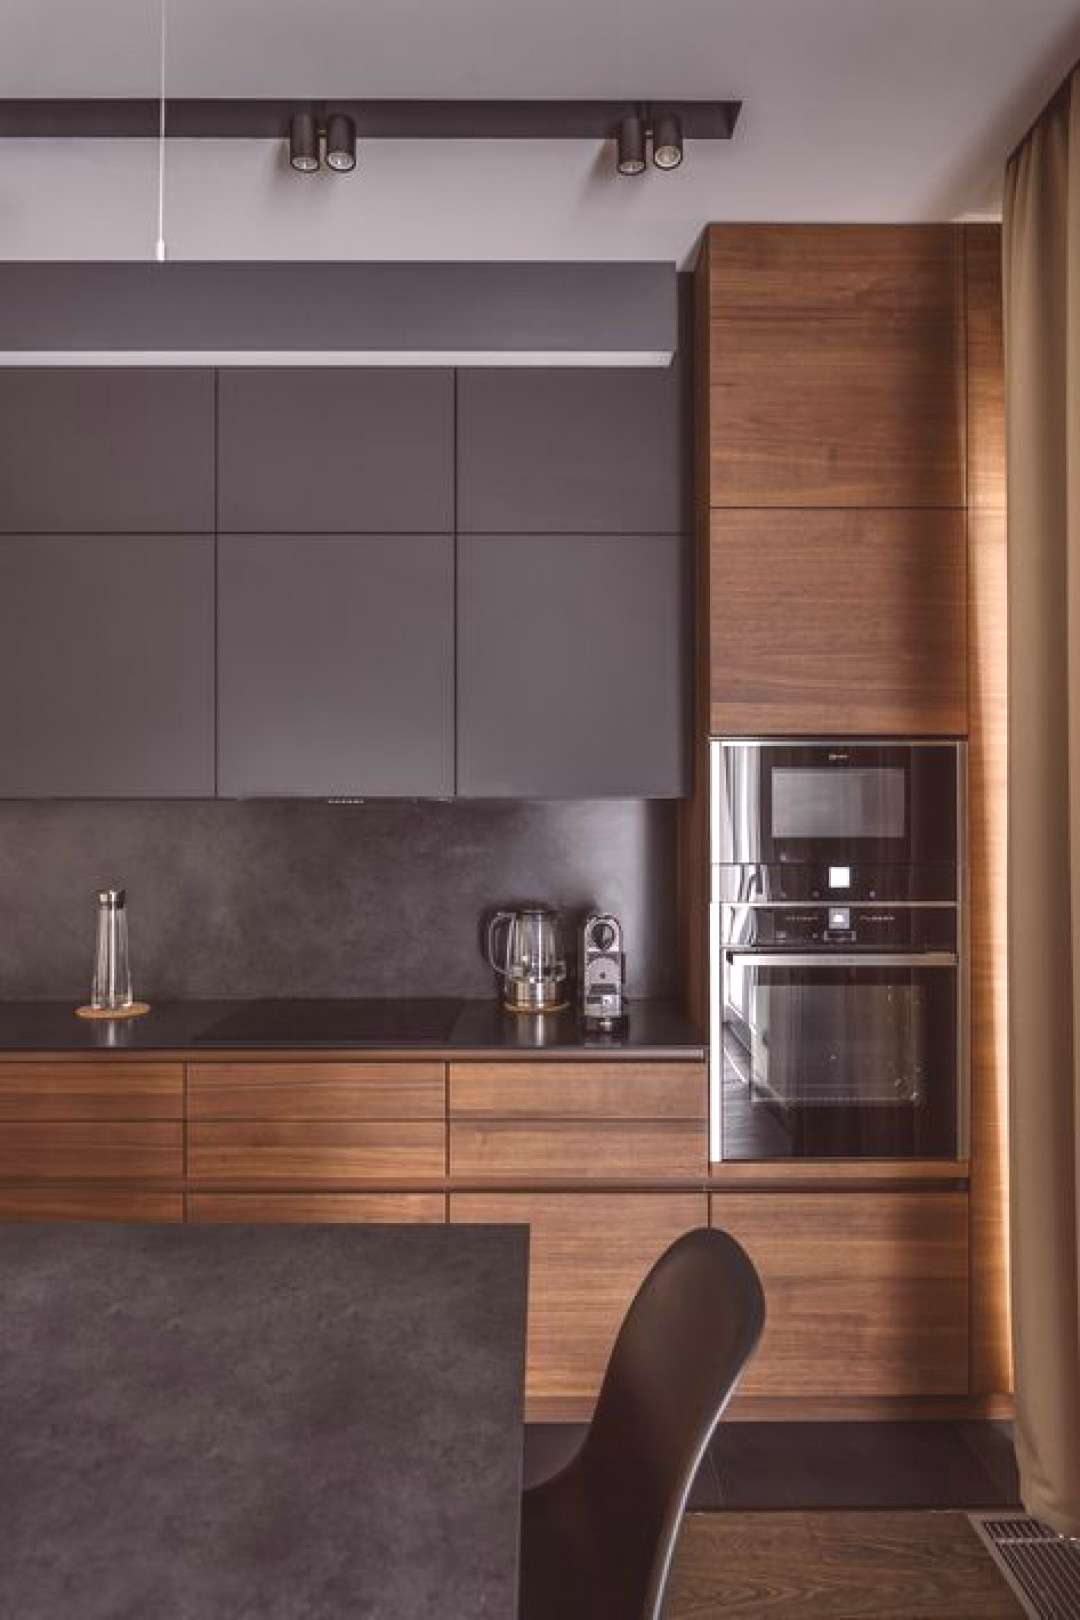 37+ modern kitchen cabinets ideas for more inspiration dishes - decoration ideas#cabinets